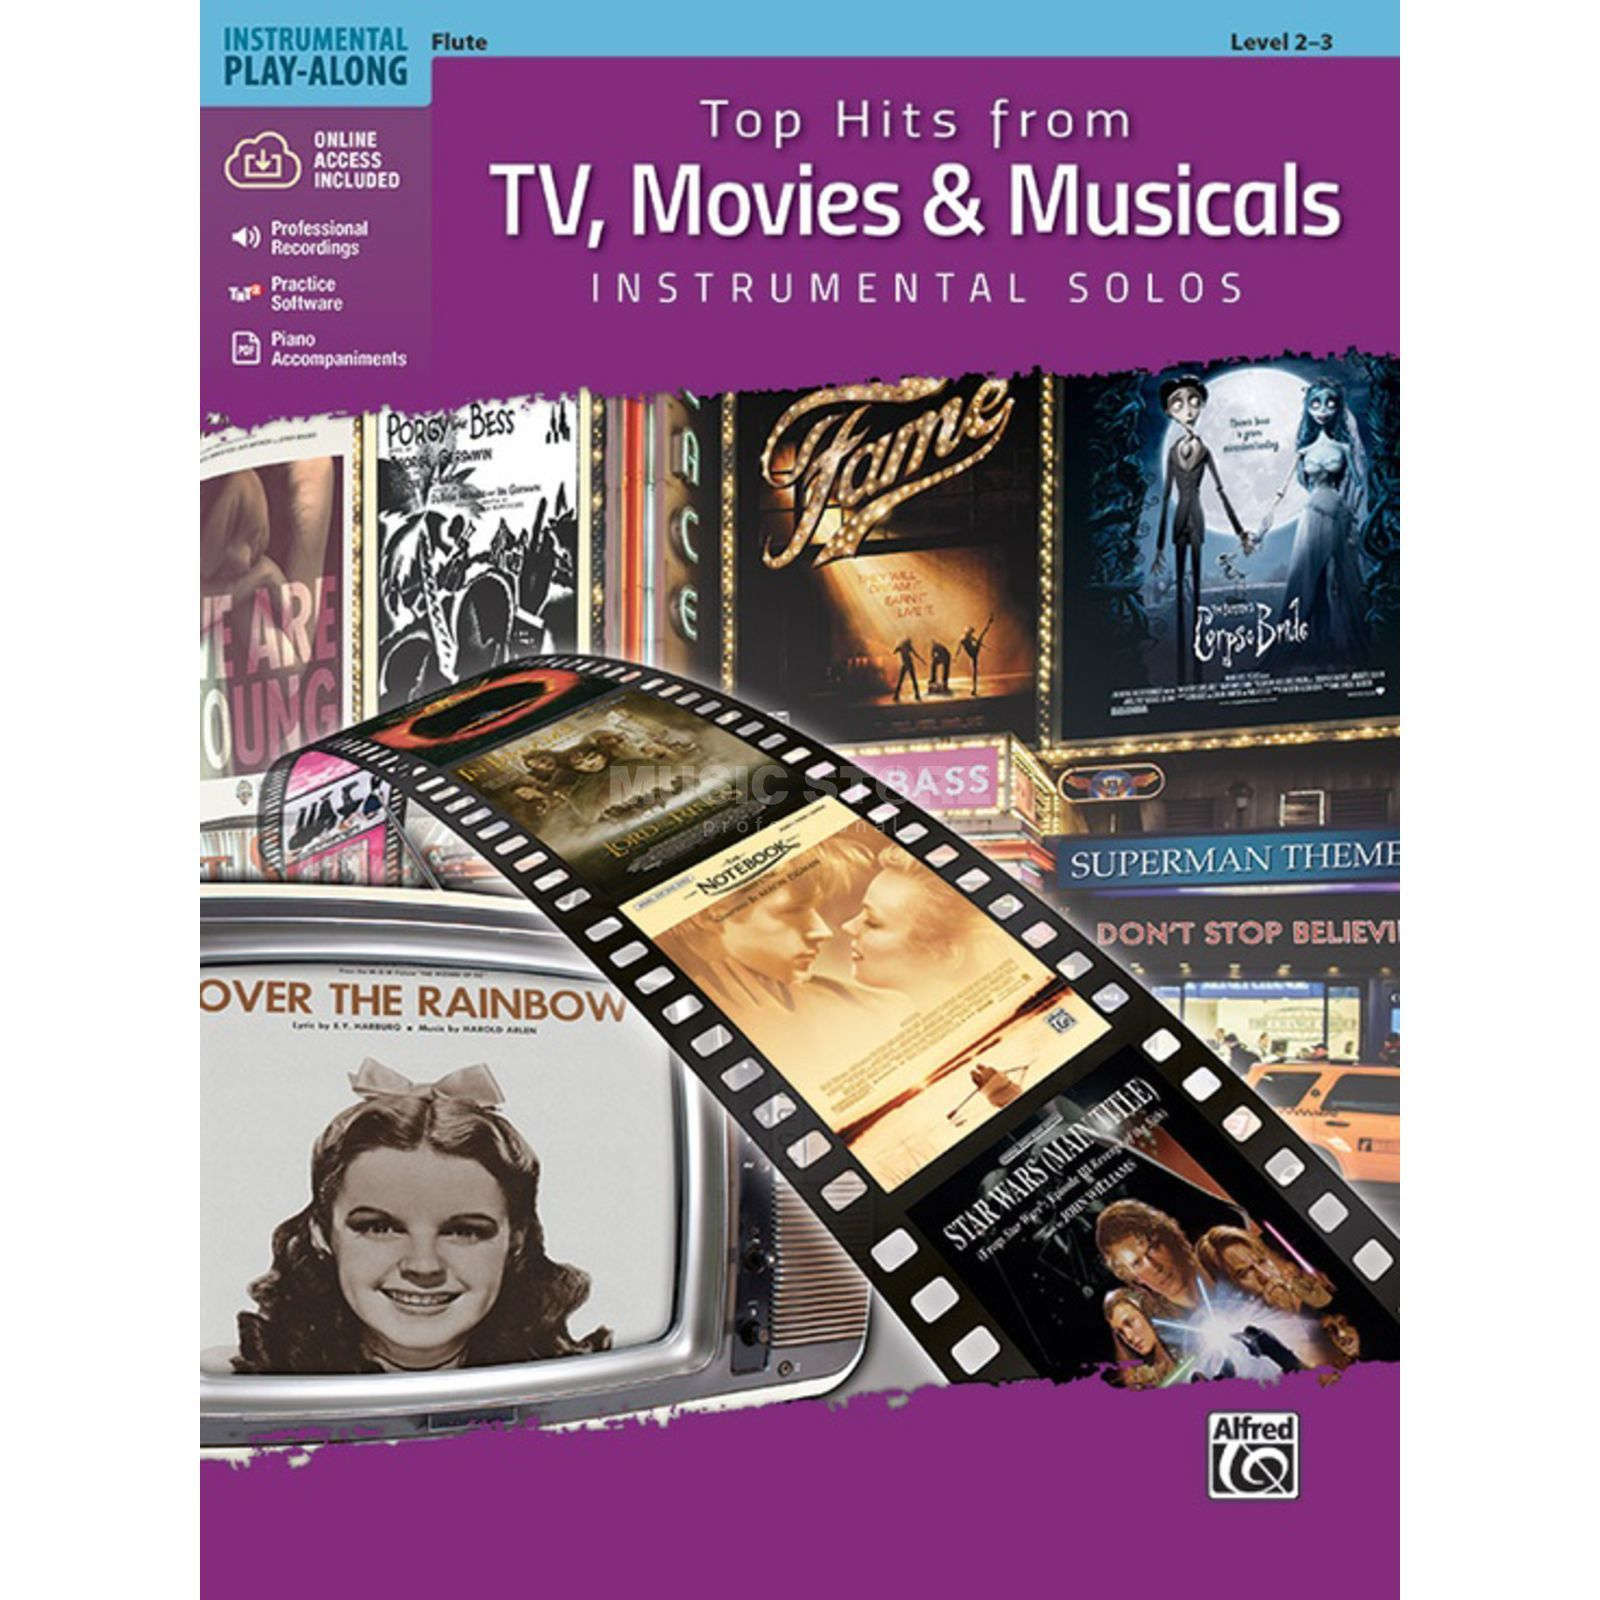 Alfred Music Top Hits from TV, Movies & Musicals - Flute Produktbillede